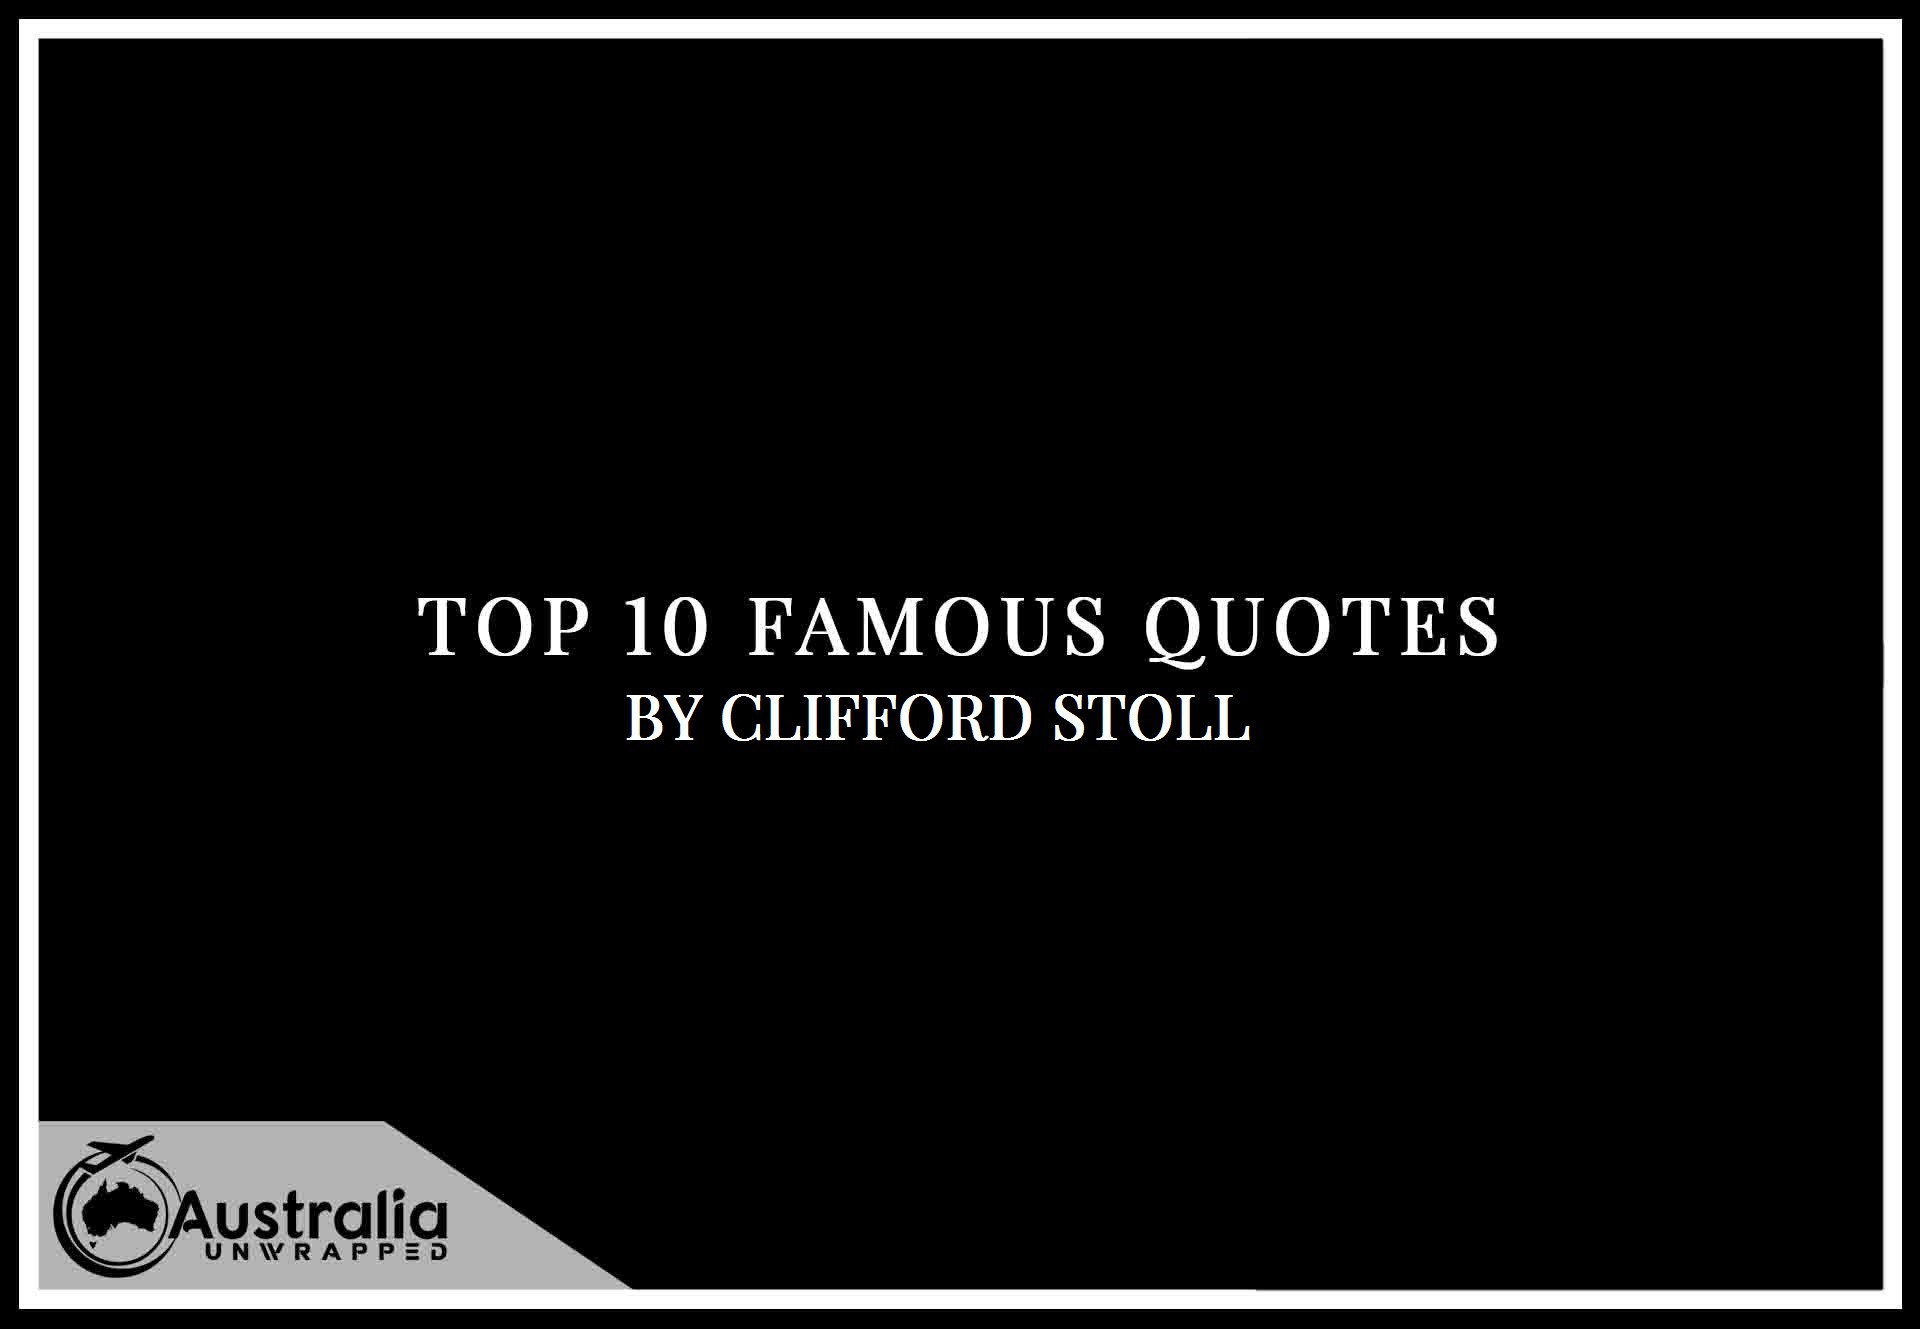 Clifford Stoll's Top 10 Popular and Famous Quotes